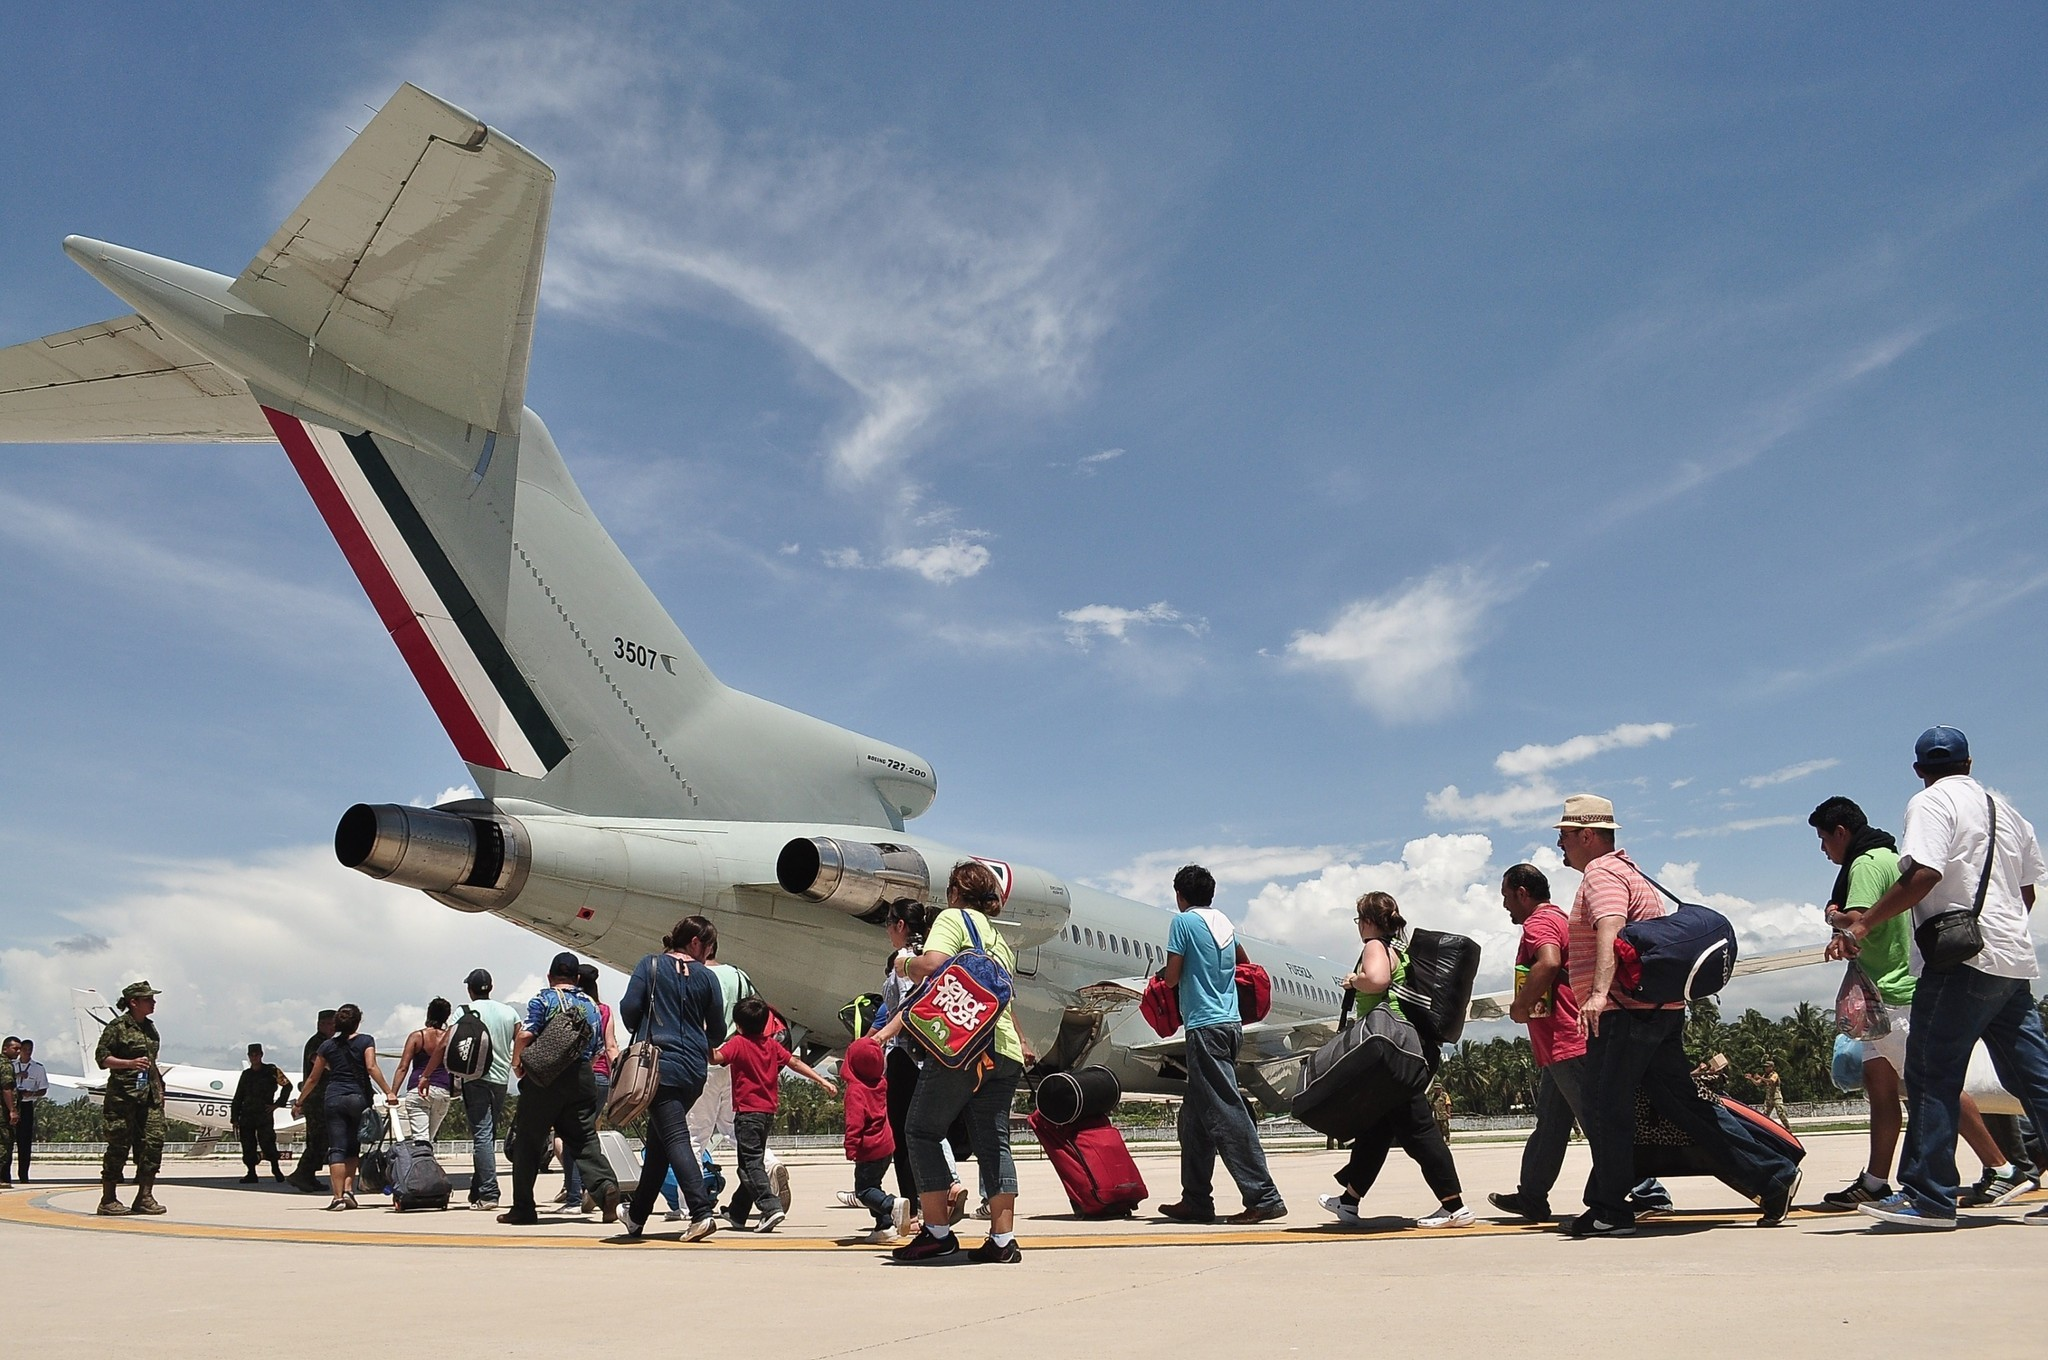 Flooding in Mexico - Tourists board a Mexican air force plane